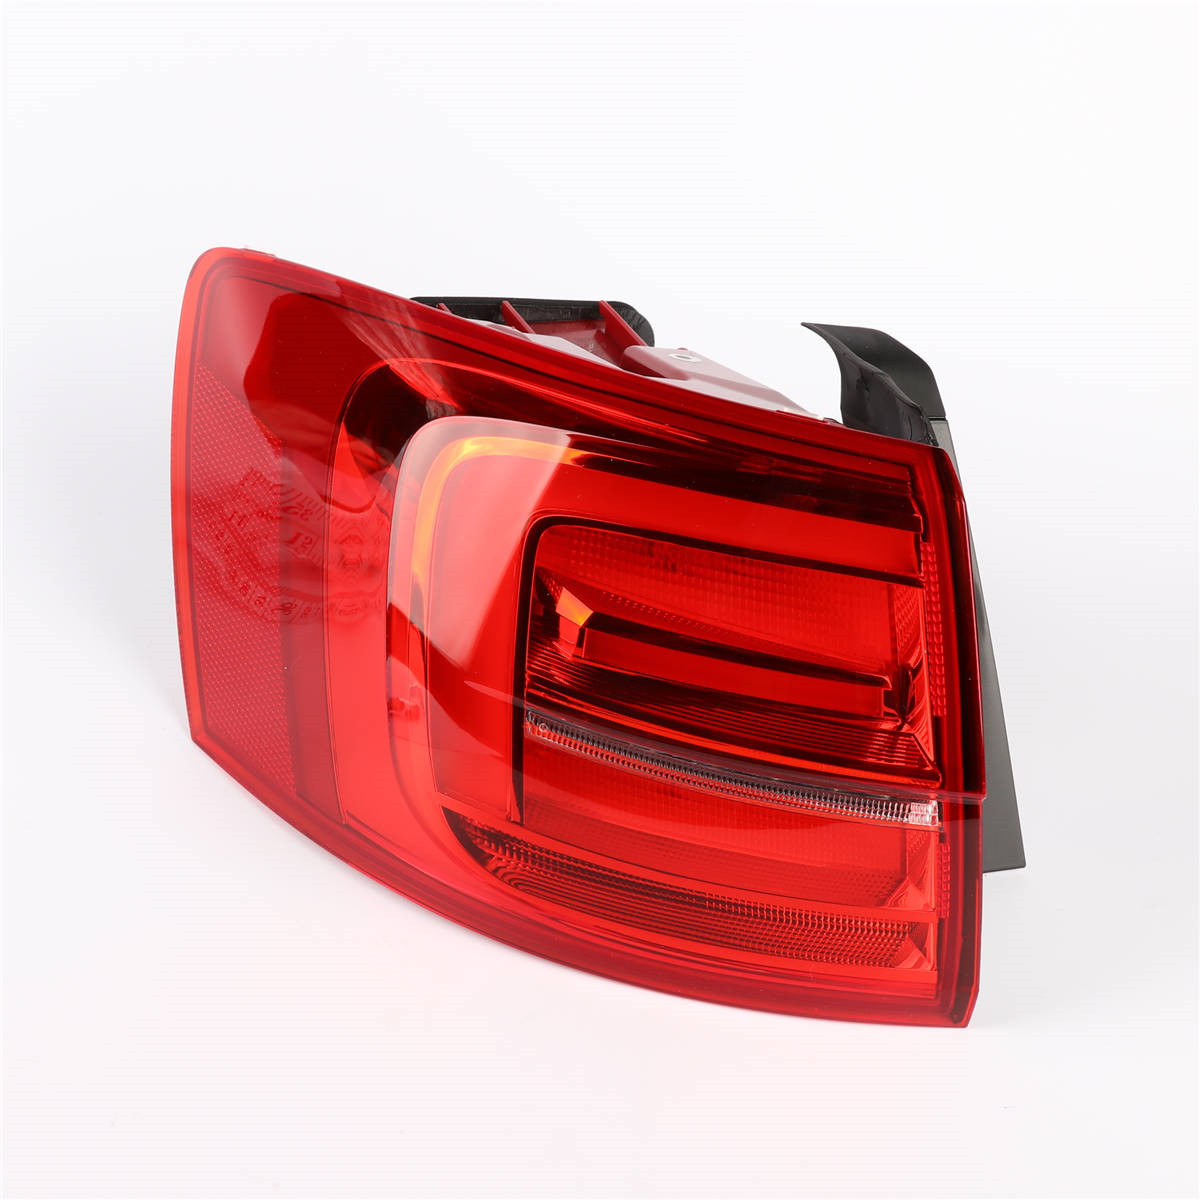 Left Side OEM 1Pcs Red Color LED Light Tail Lights Rear Lamp For VW Volkswagen 16D 945 207 A Jetta MK6 MKVI GLI 15-19 цена